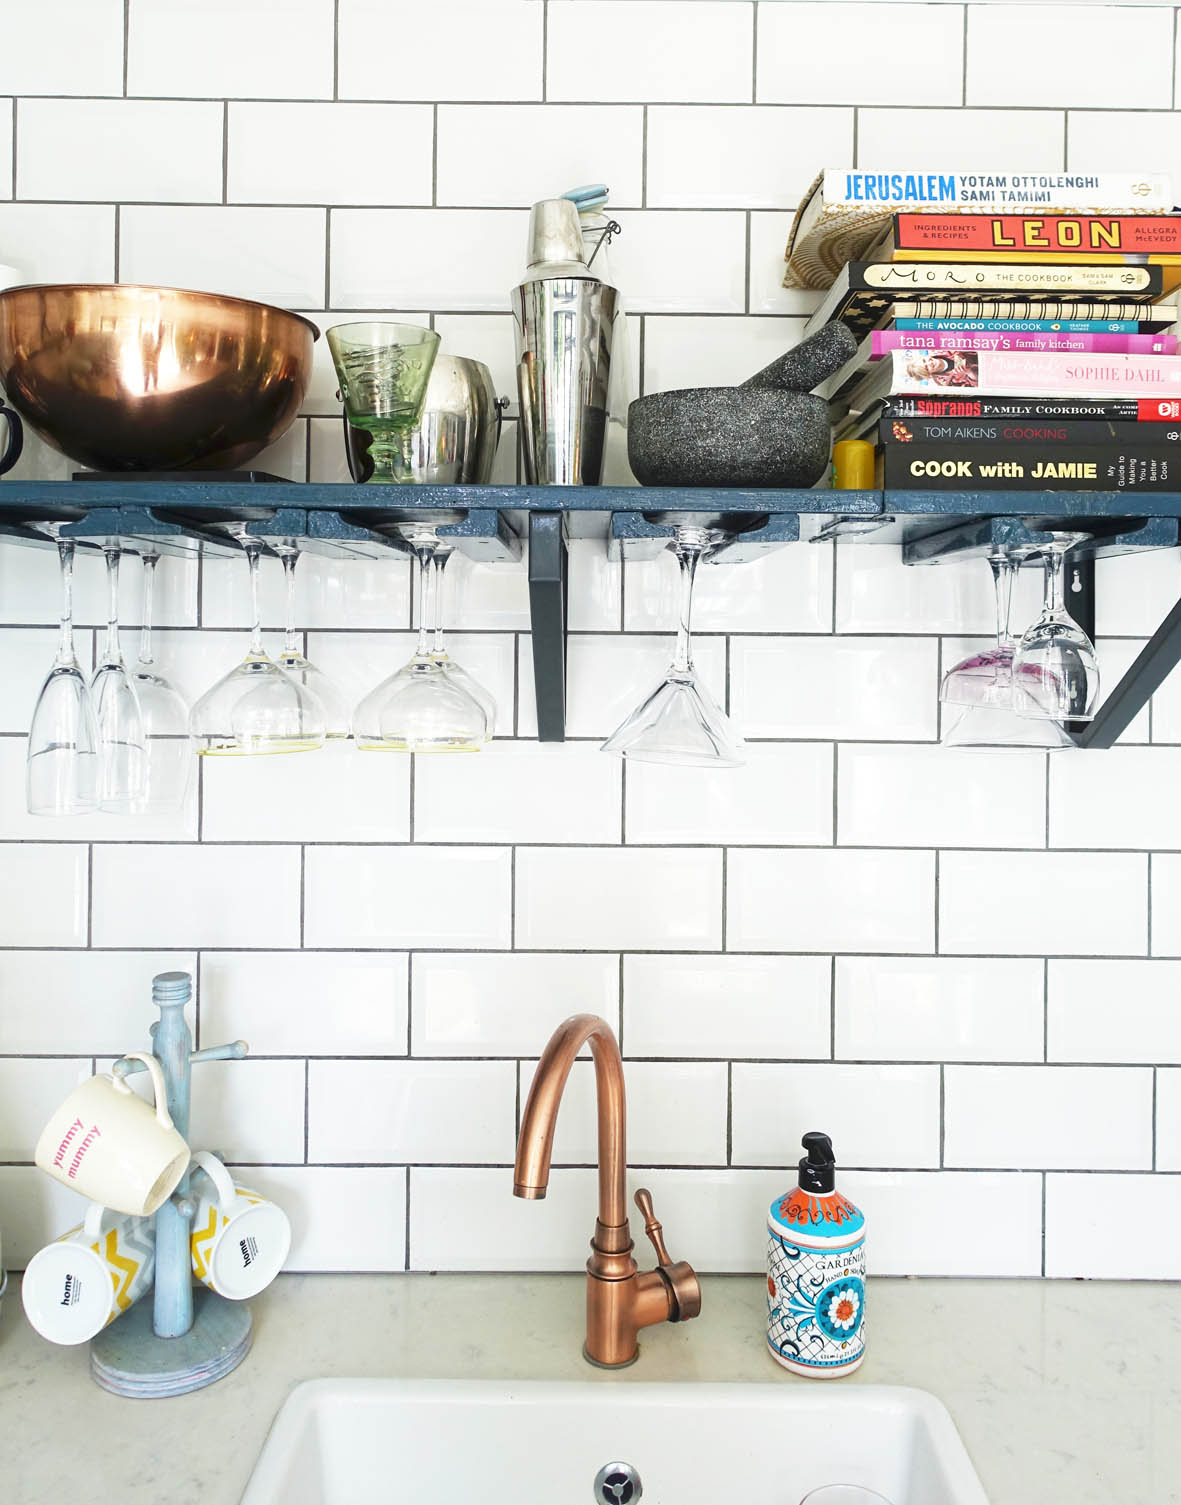 Copper accents stand out against the white tiled background